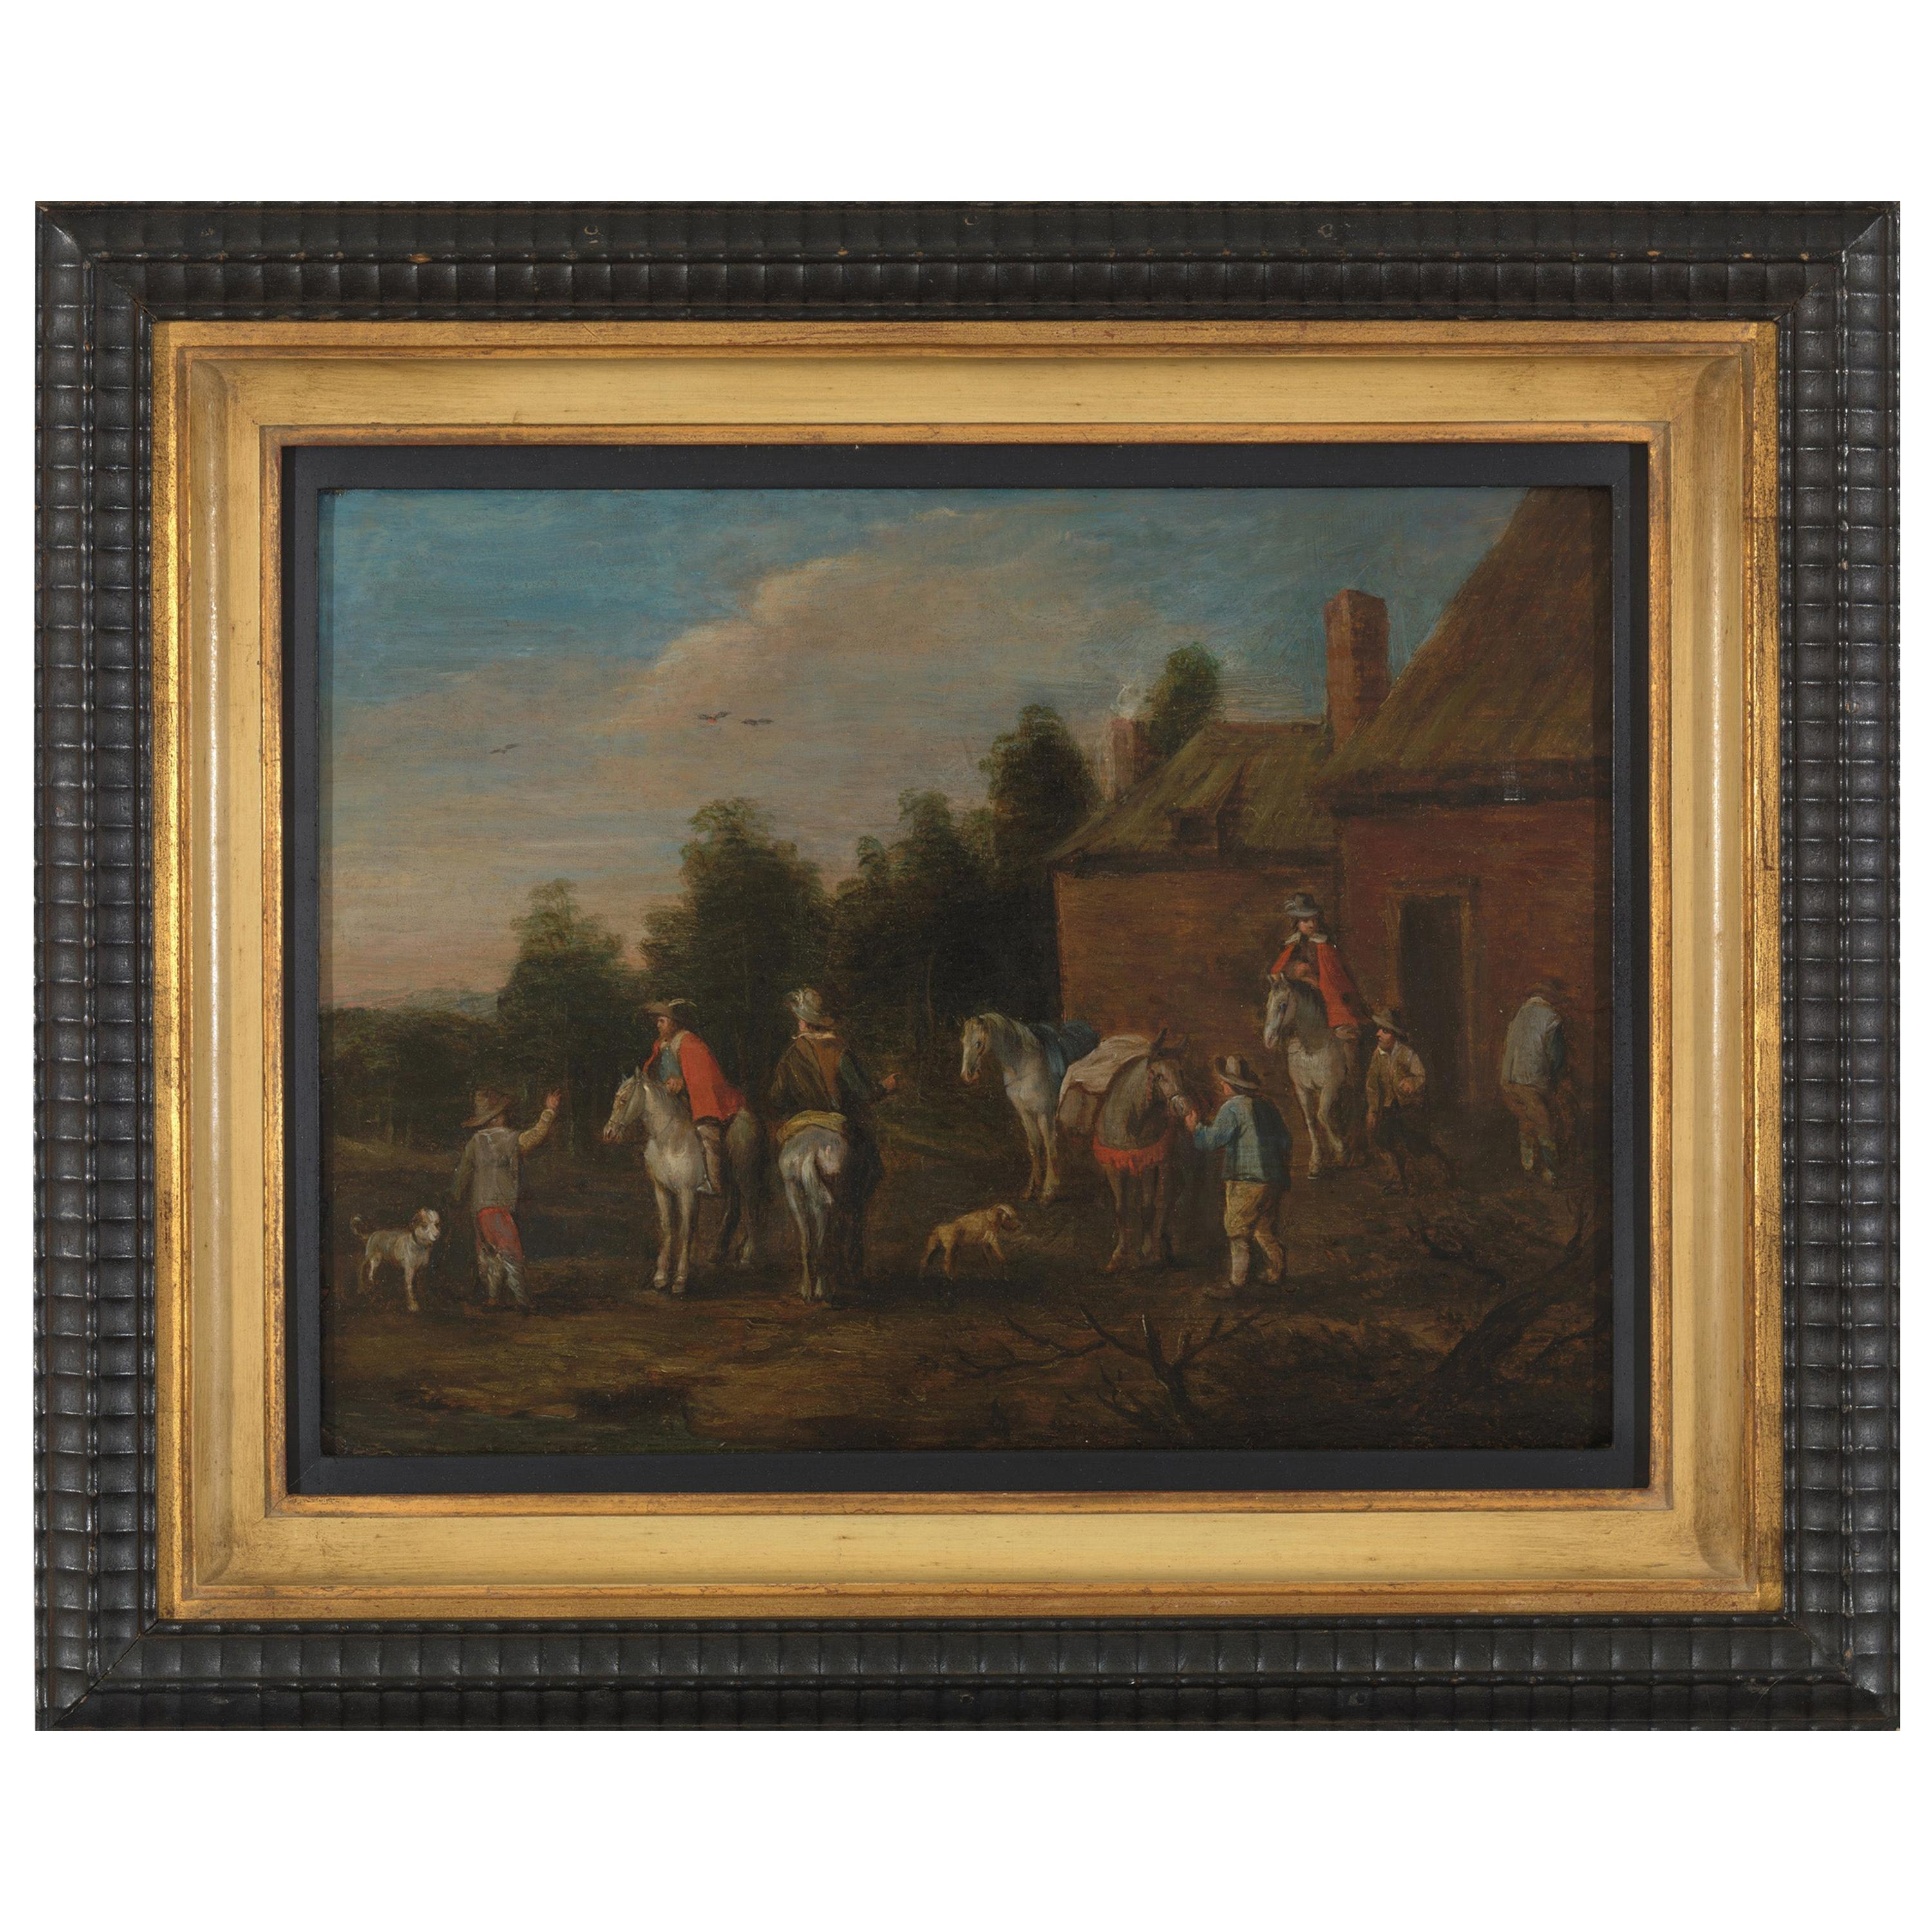 After Philips Wouwerman, Stop of the Travelers, Oil on Panel